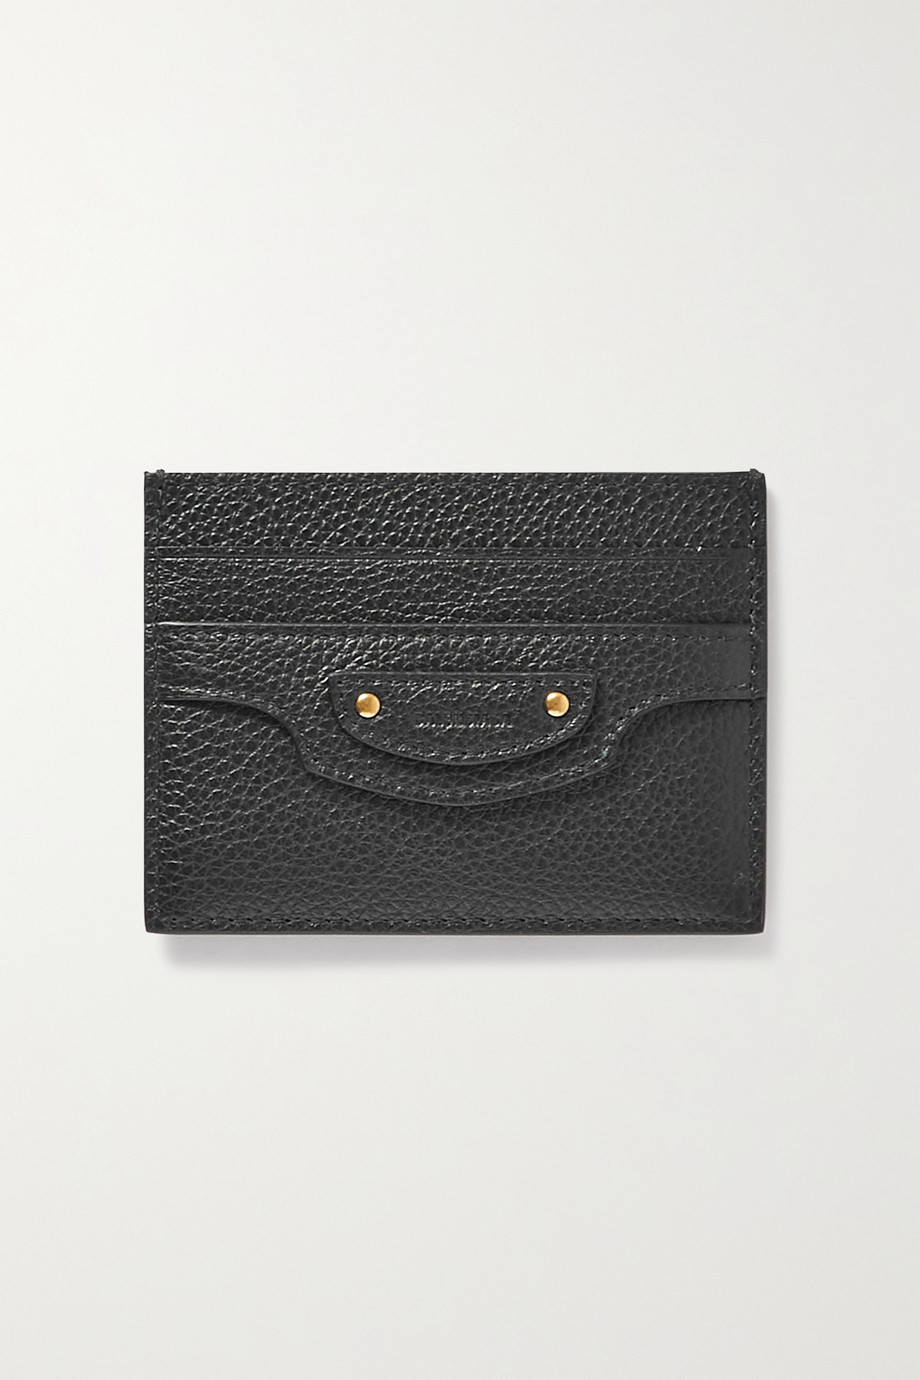 Balenciaga Neo Classic City textured-leather cardholder